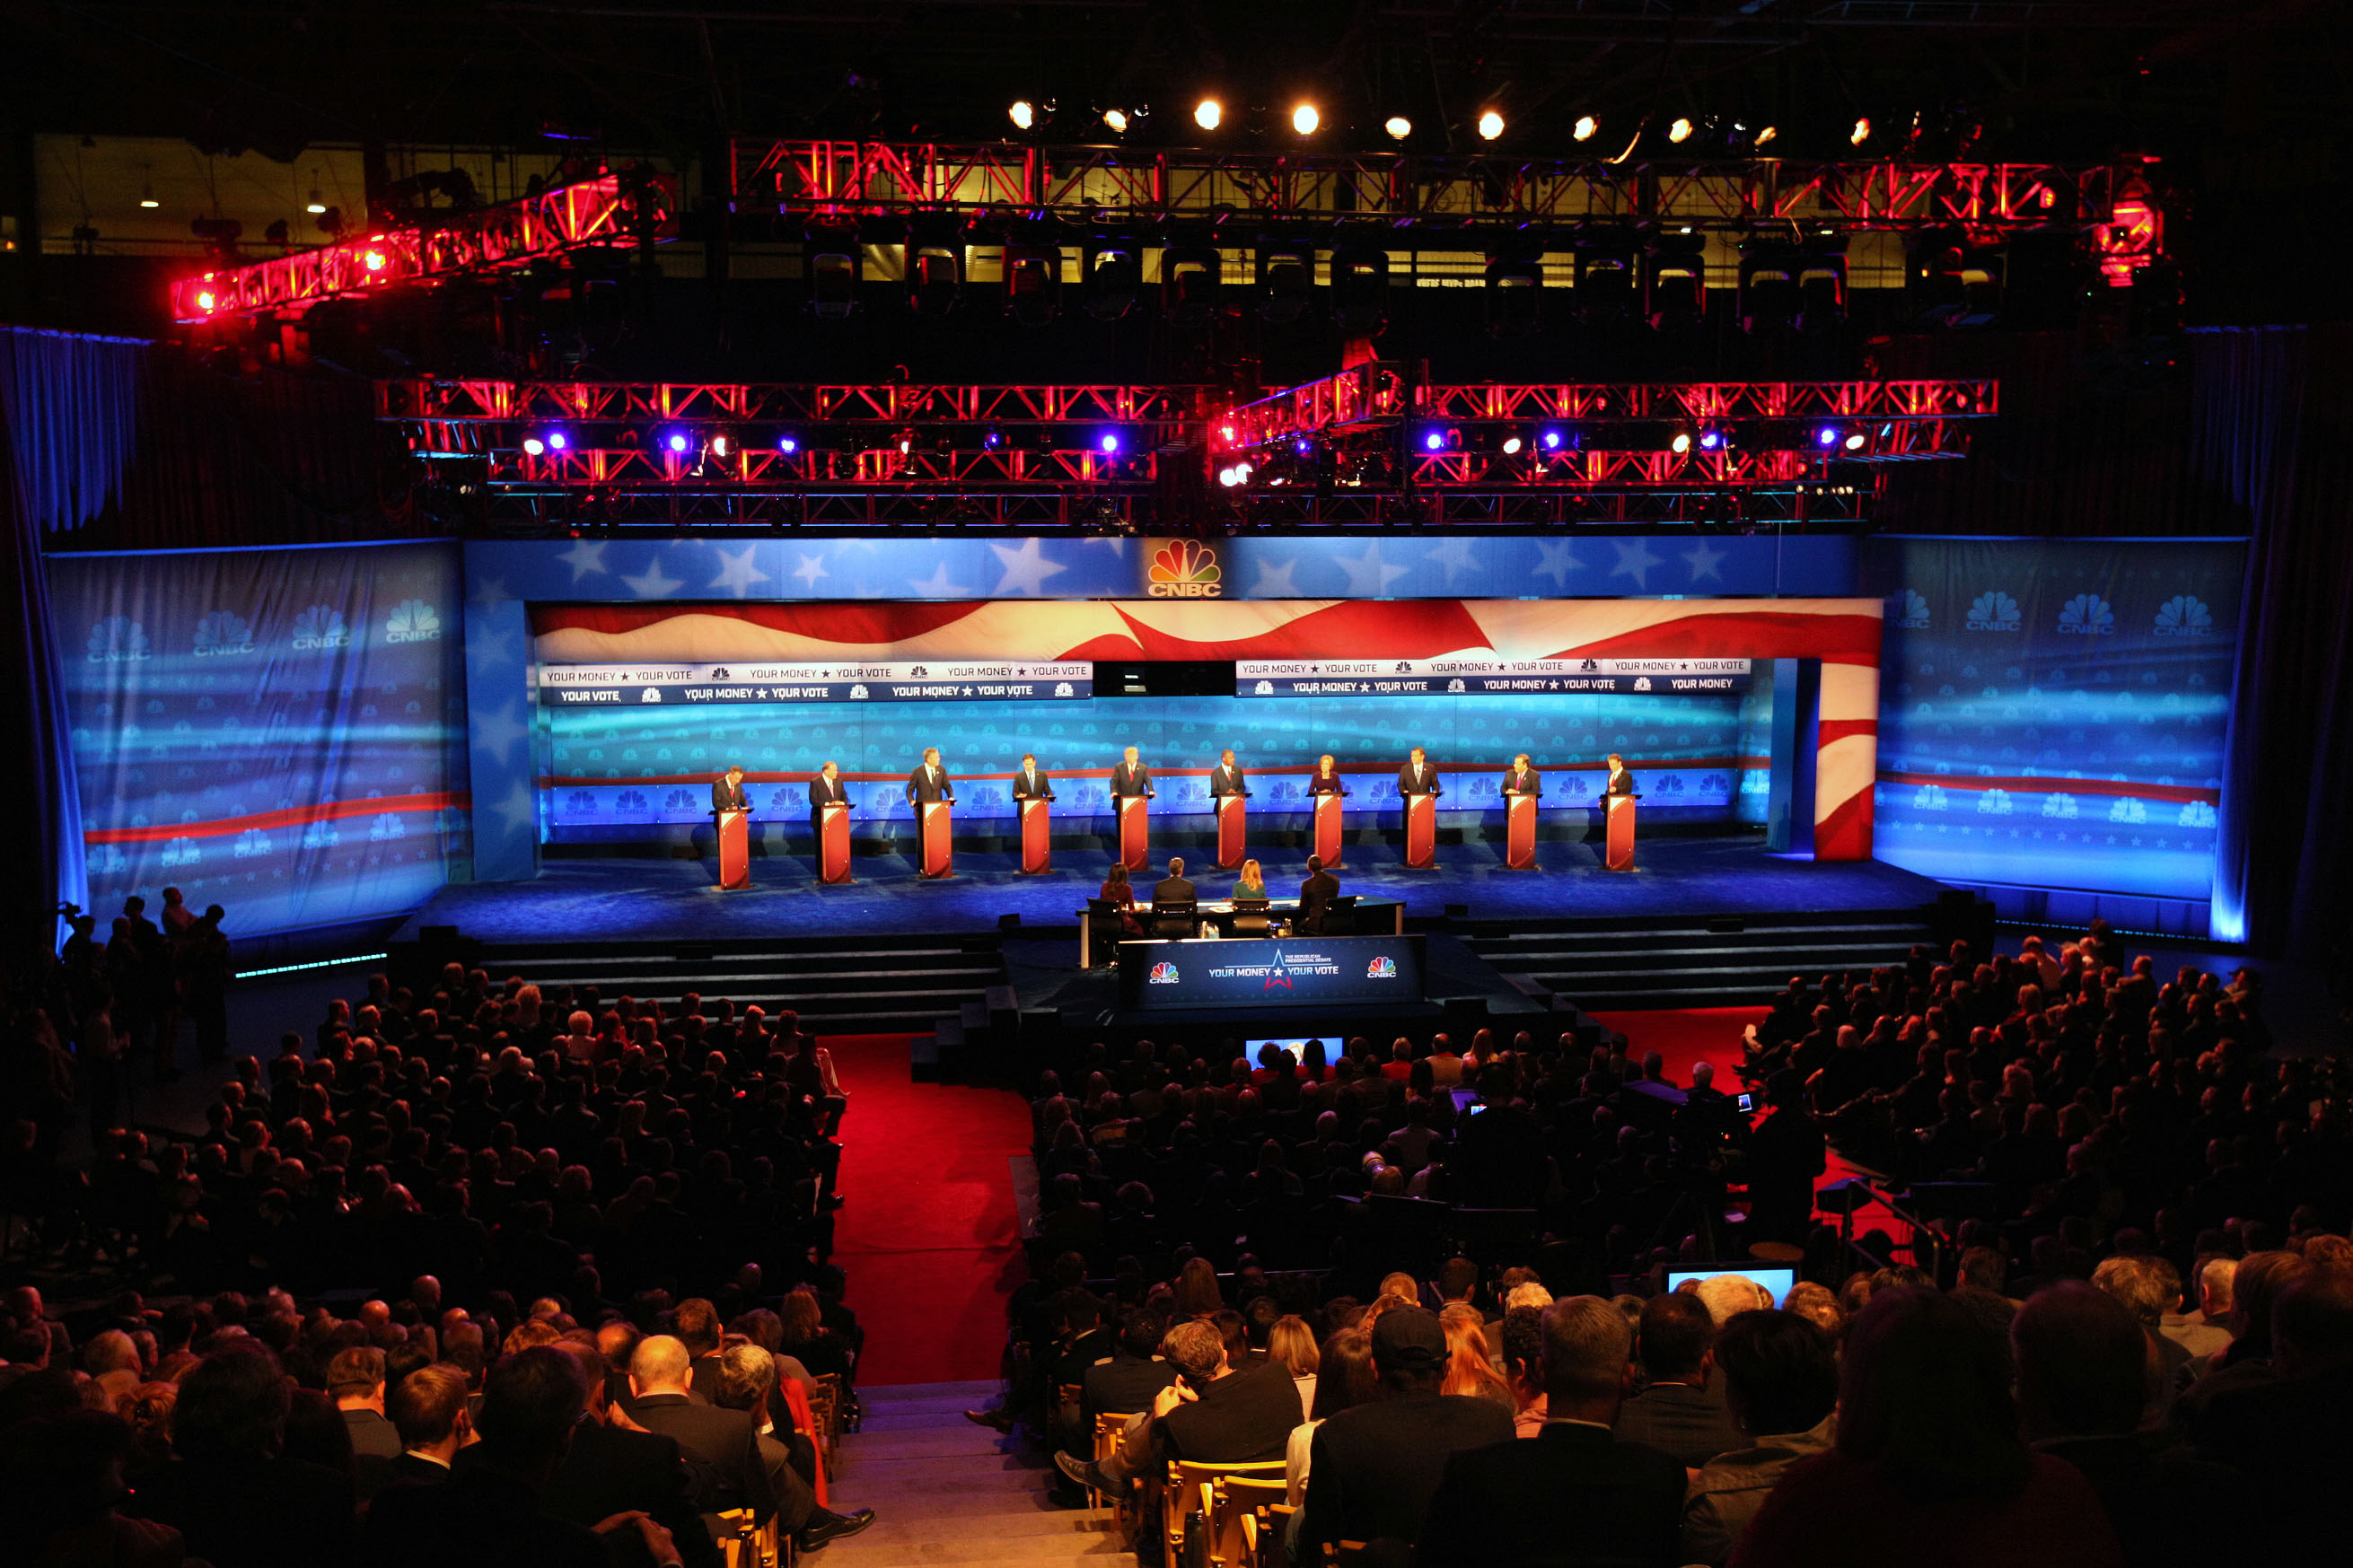 The Republican presidential debate at the University of Colorado Boulder in Boulder, Colo. on Oct. 28, 2015.